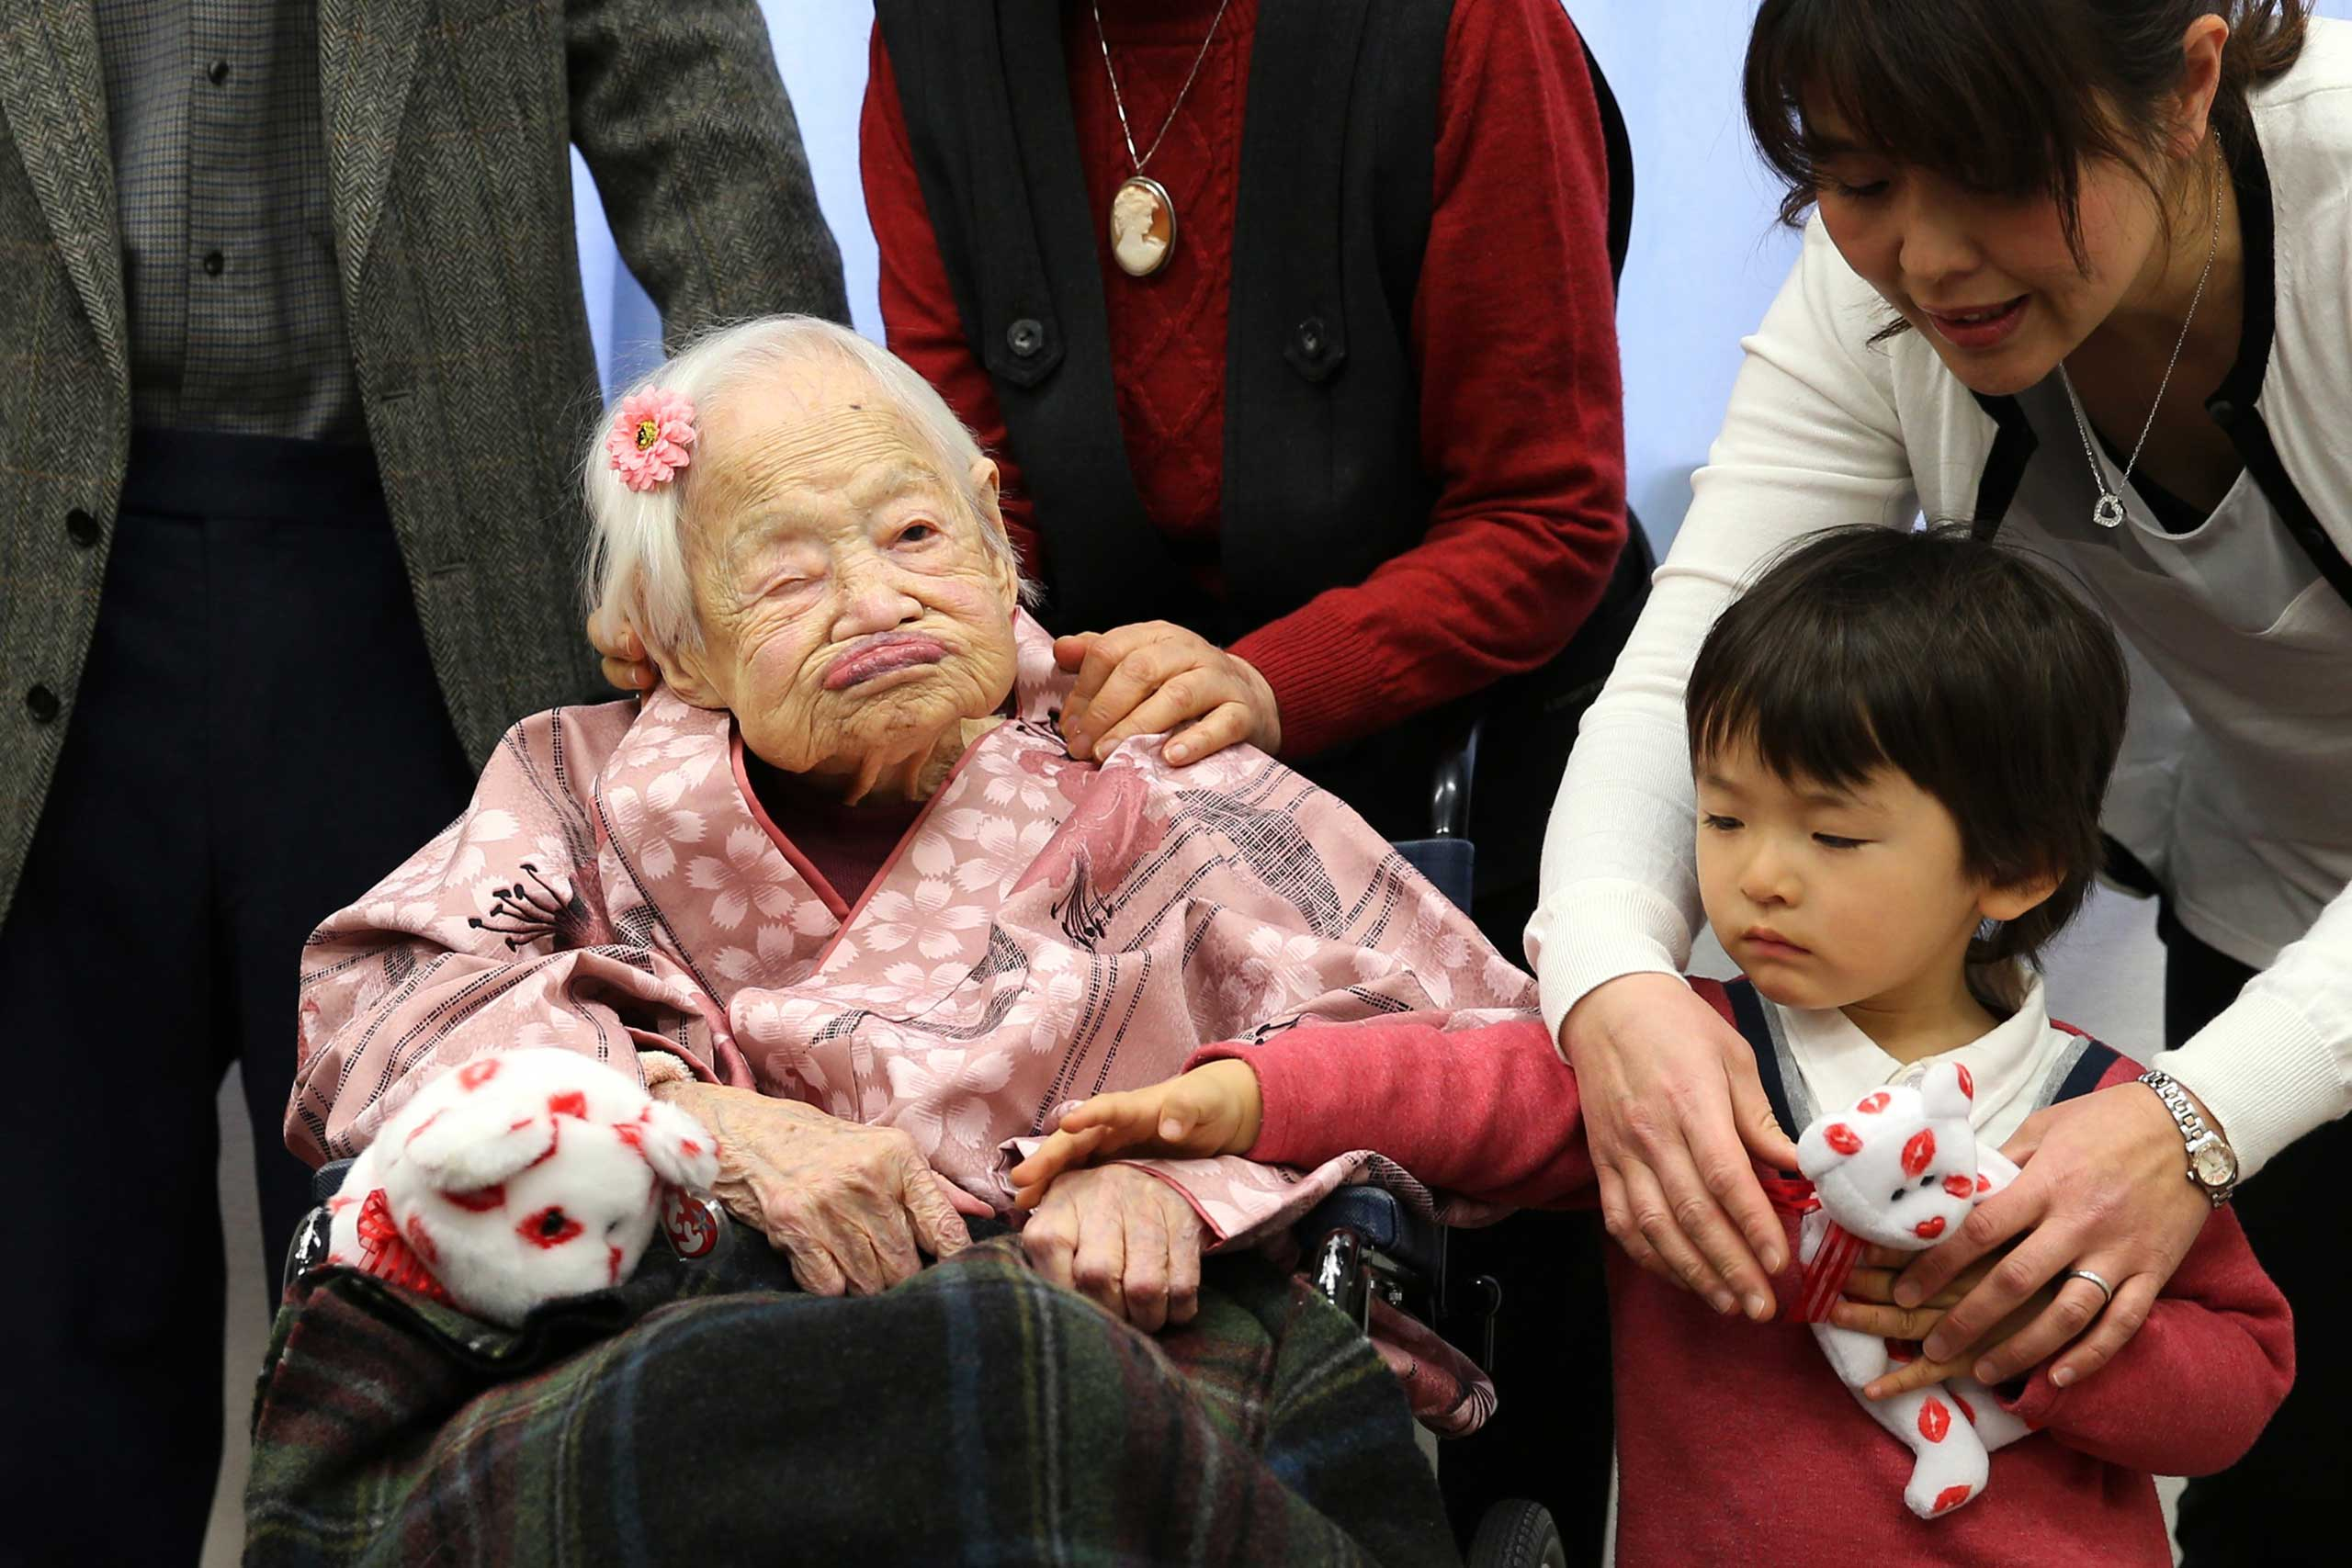 Misao Okawa, the world's oldest Japanese woman poses for a photo with her great-grandchild Himaki and grandchild Takako Okawa on her 117th birthday celebration at Kurenai Nursing Home on March 4, 2015 in Osaka, Japan.